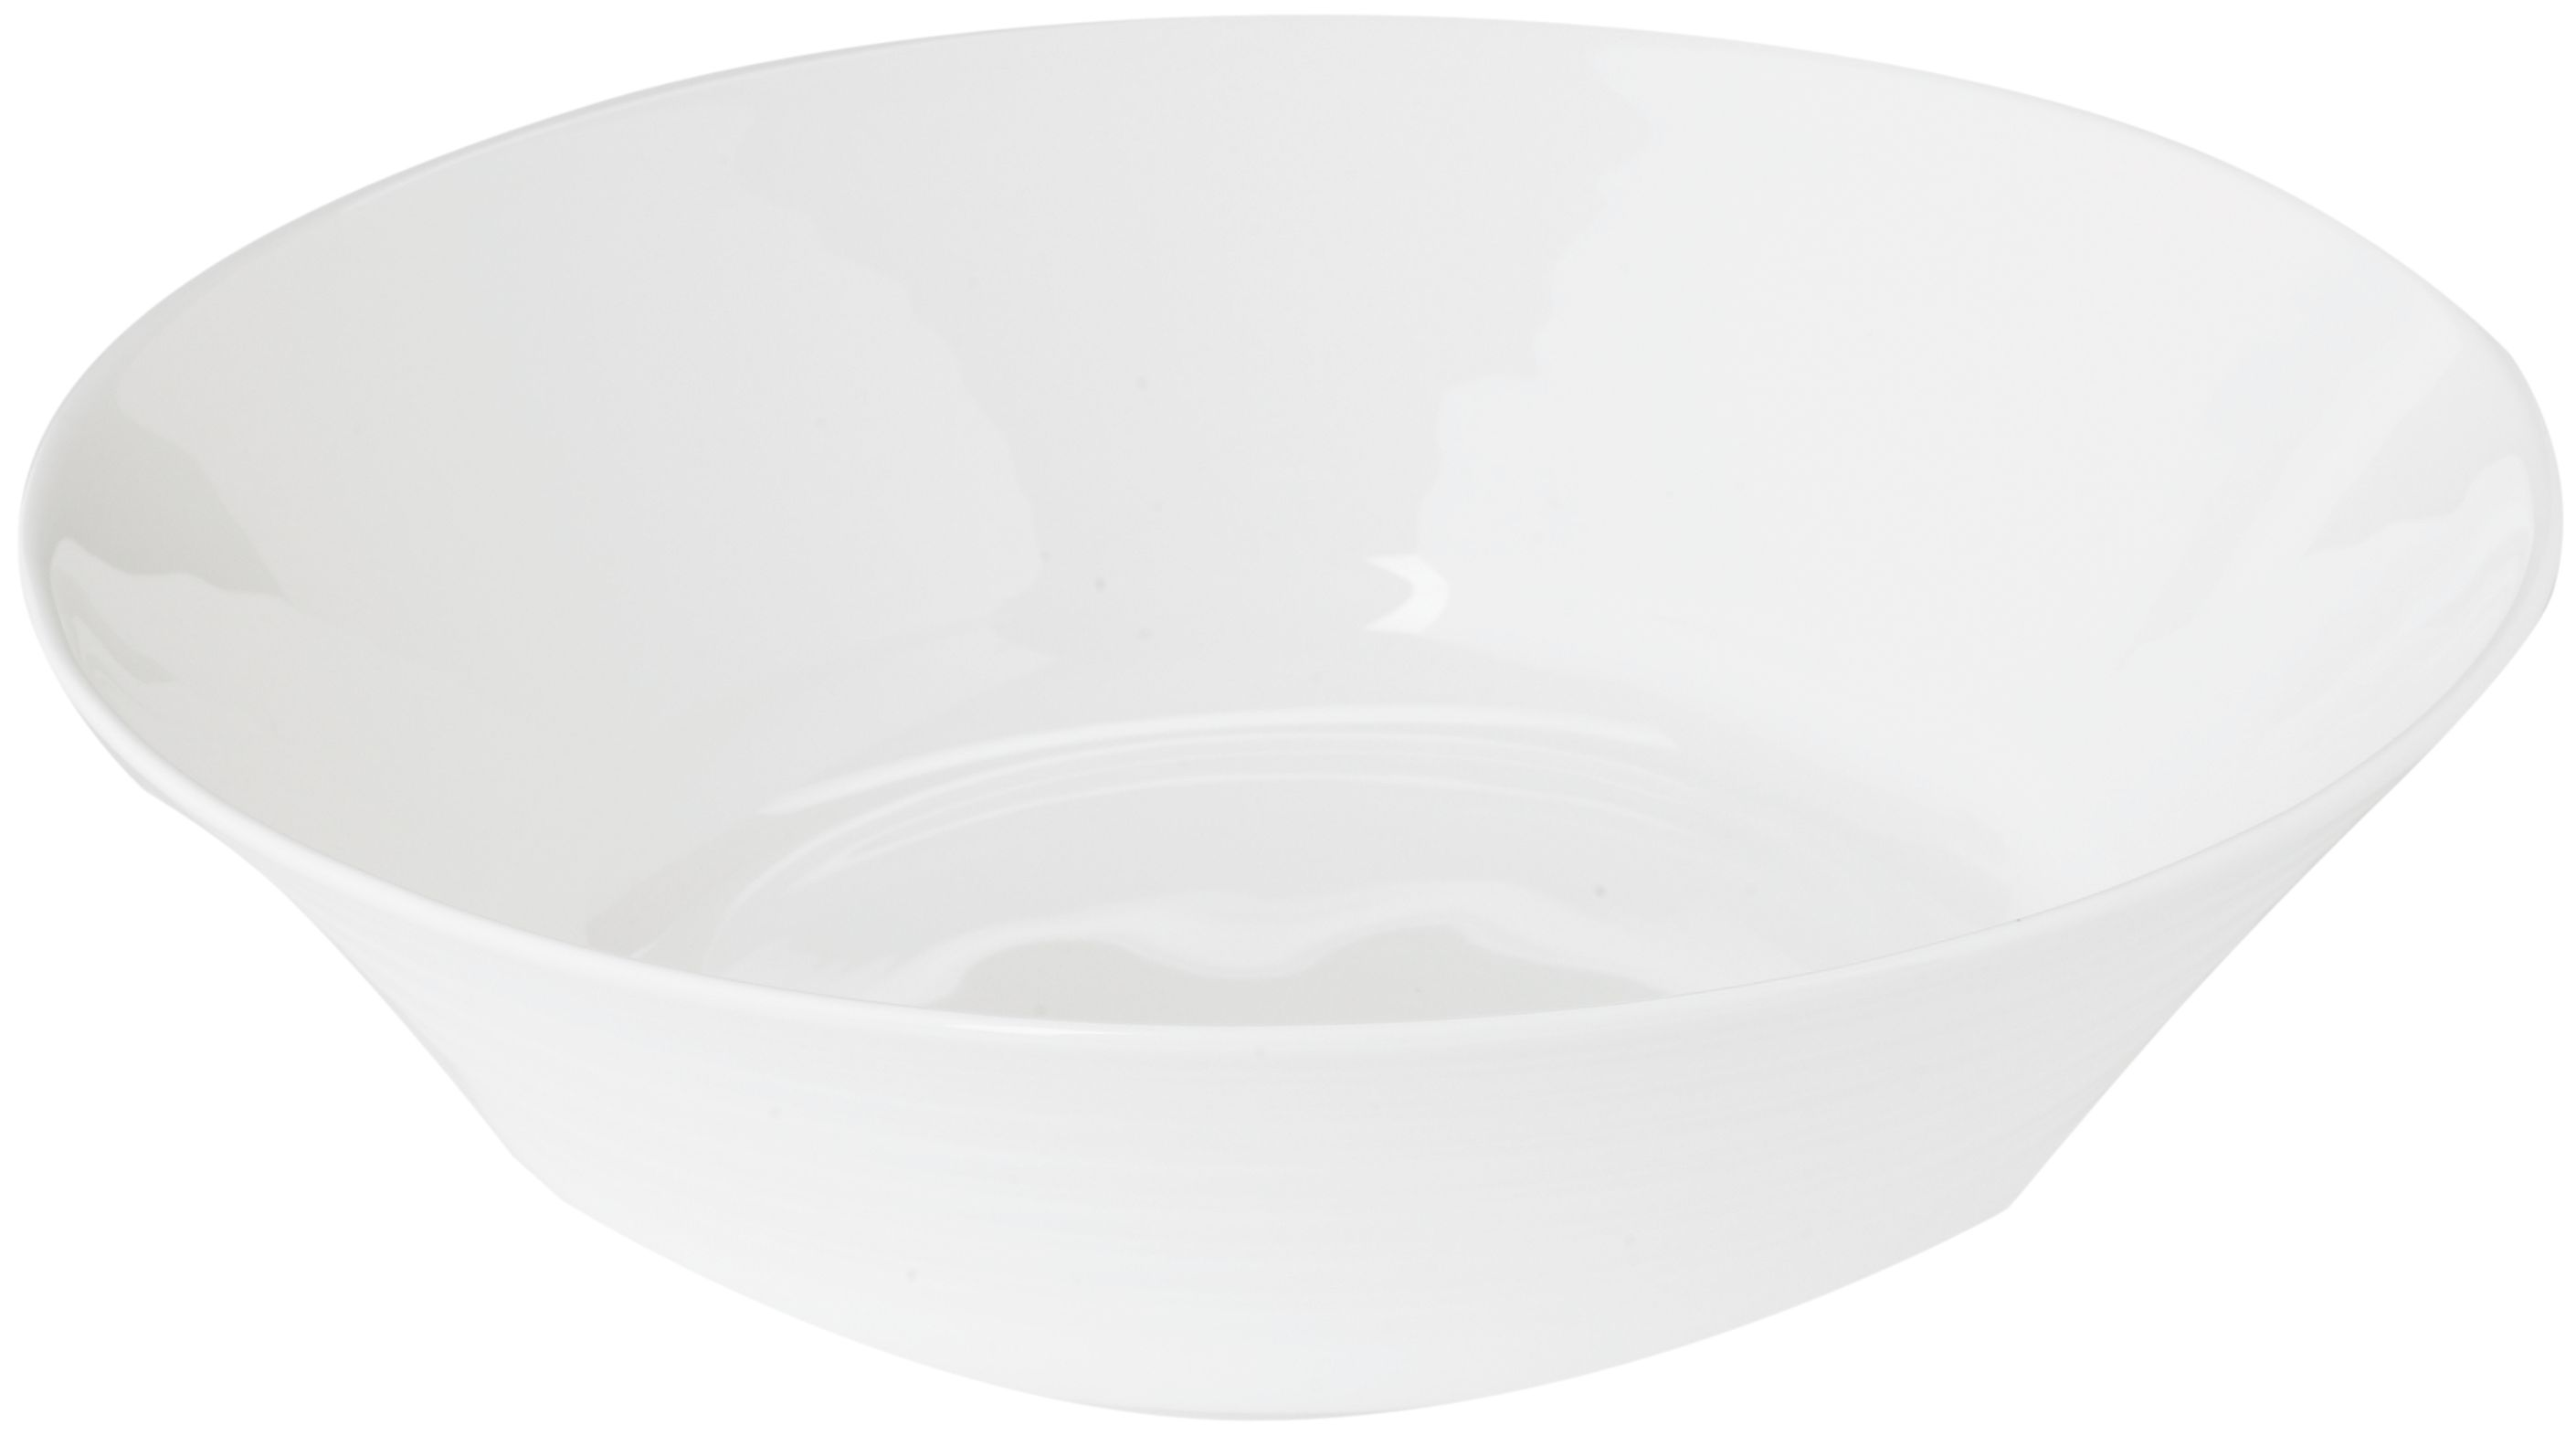 Soho Bone China Serving Bowl